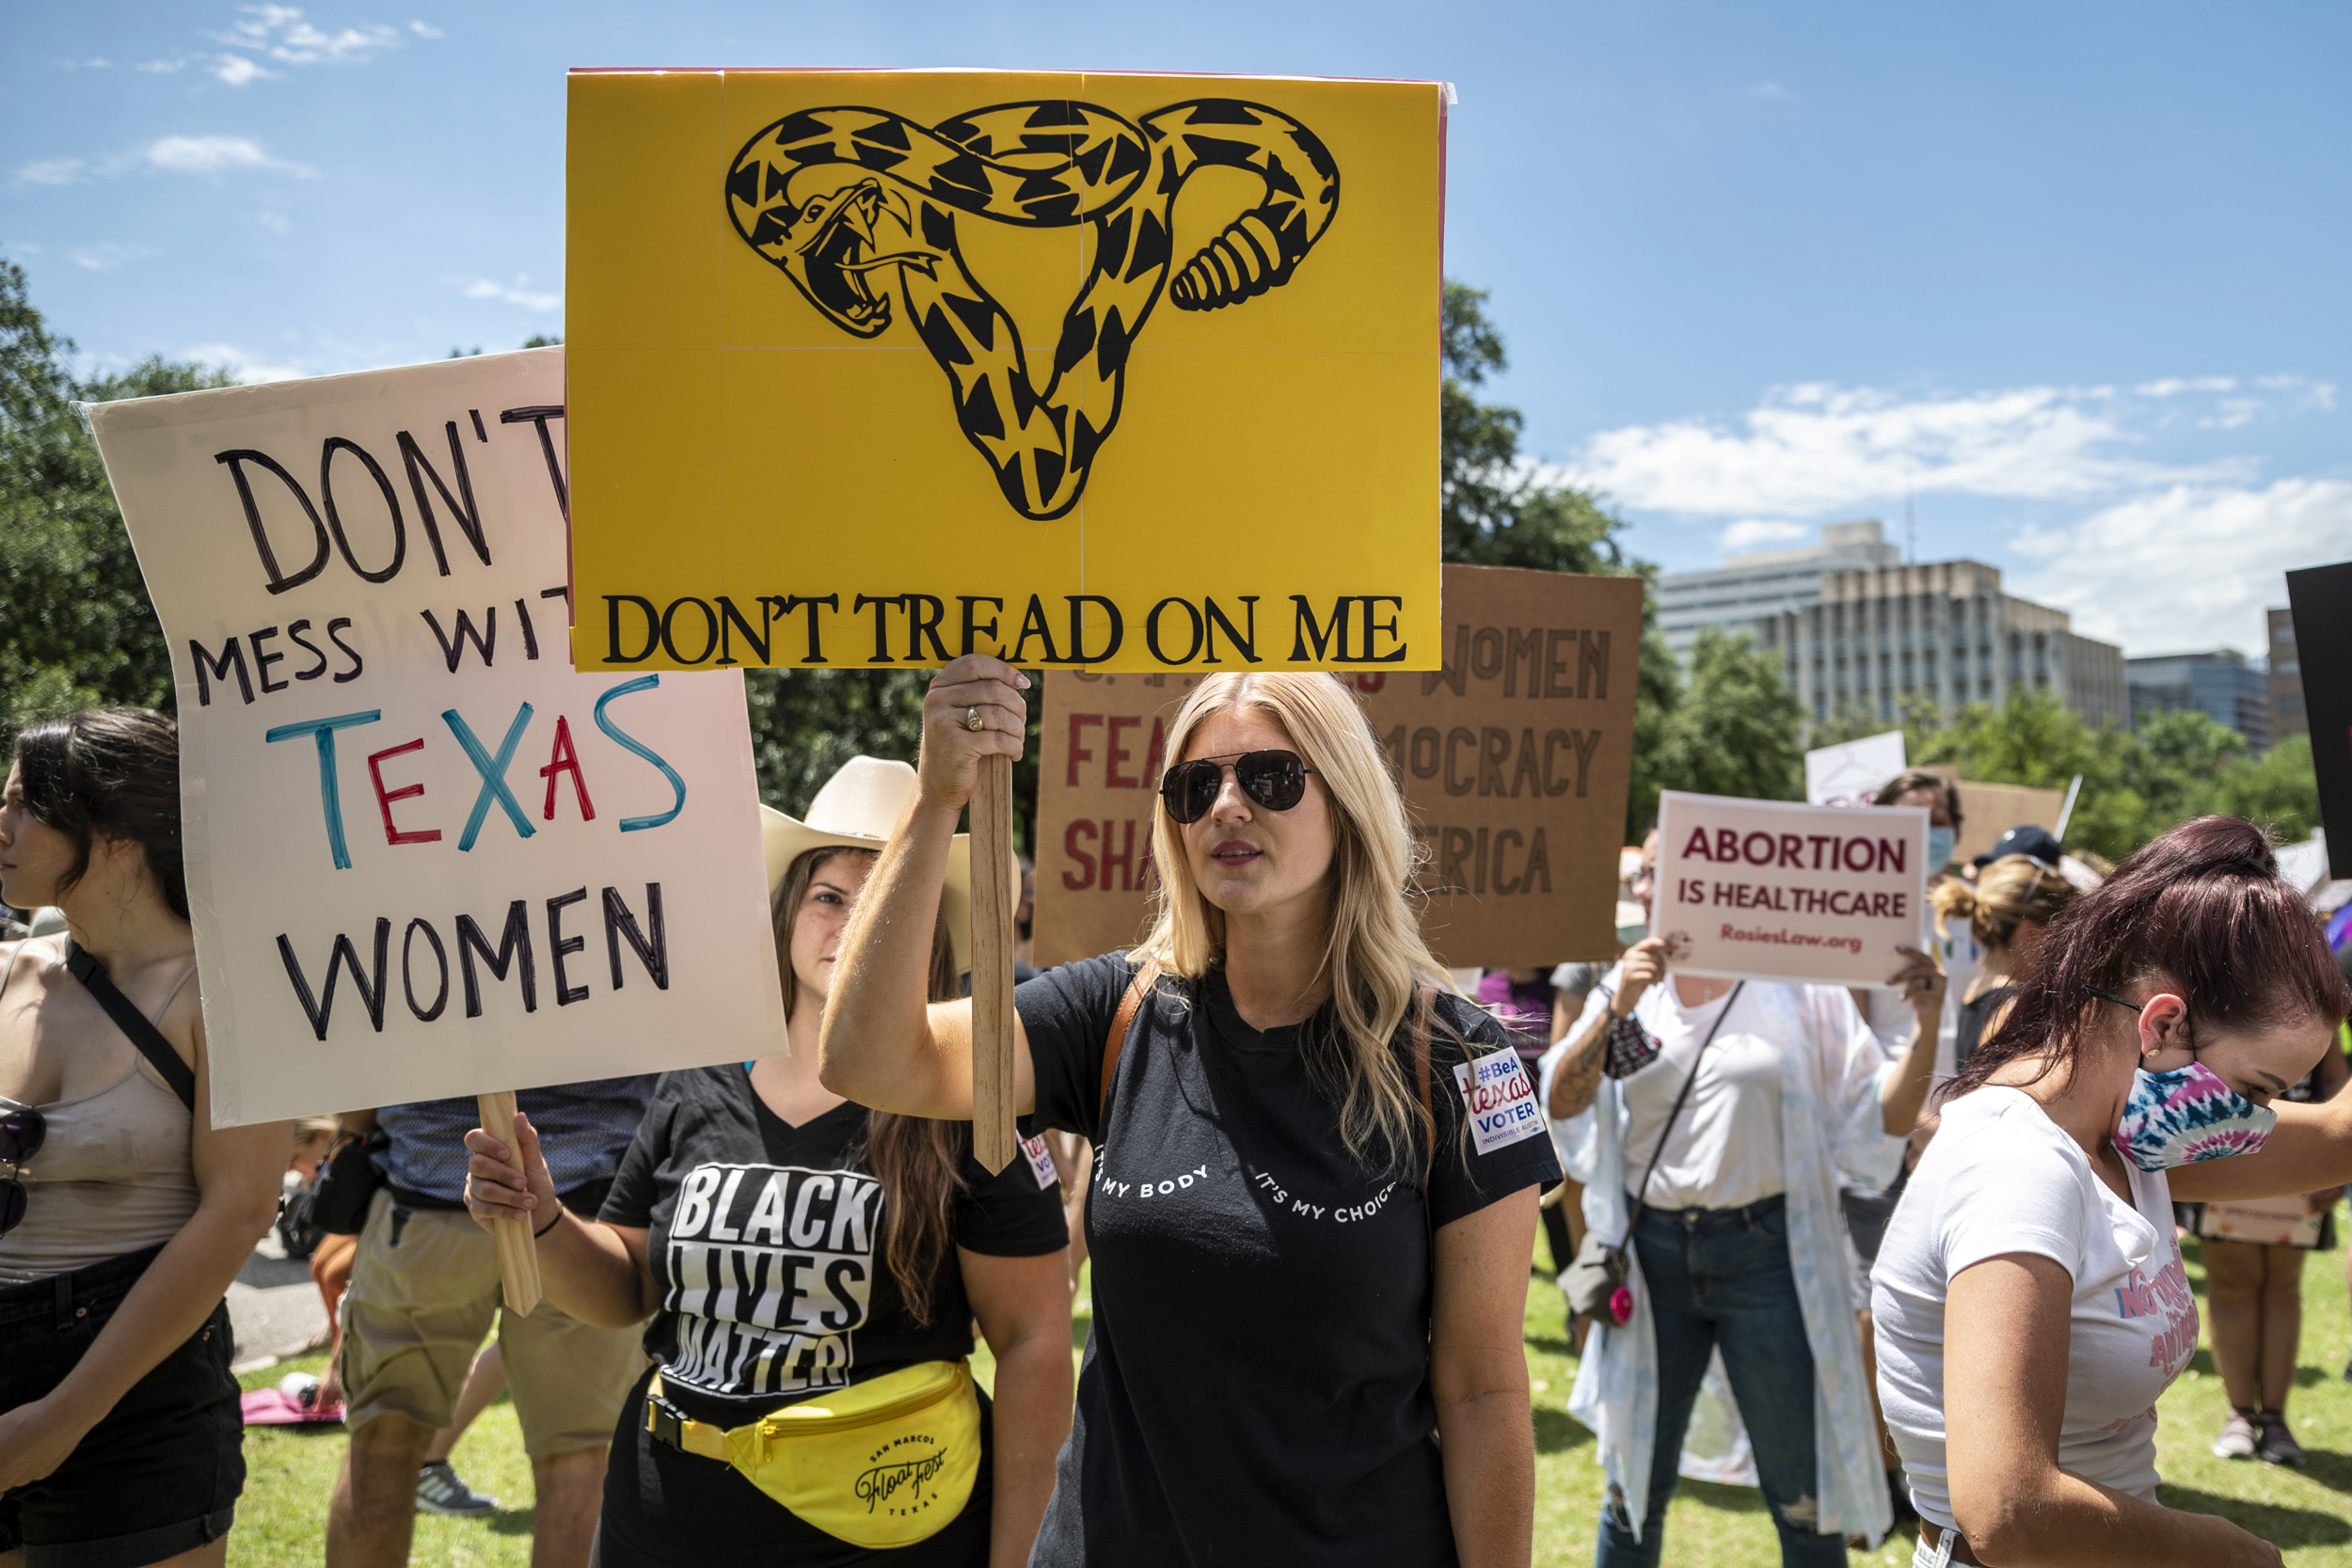 Strict new Texas abortion law takes effect after Supreme Court doesn't intervene to block it